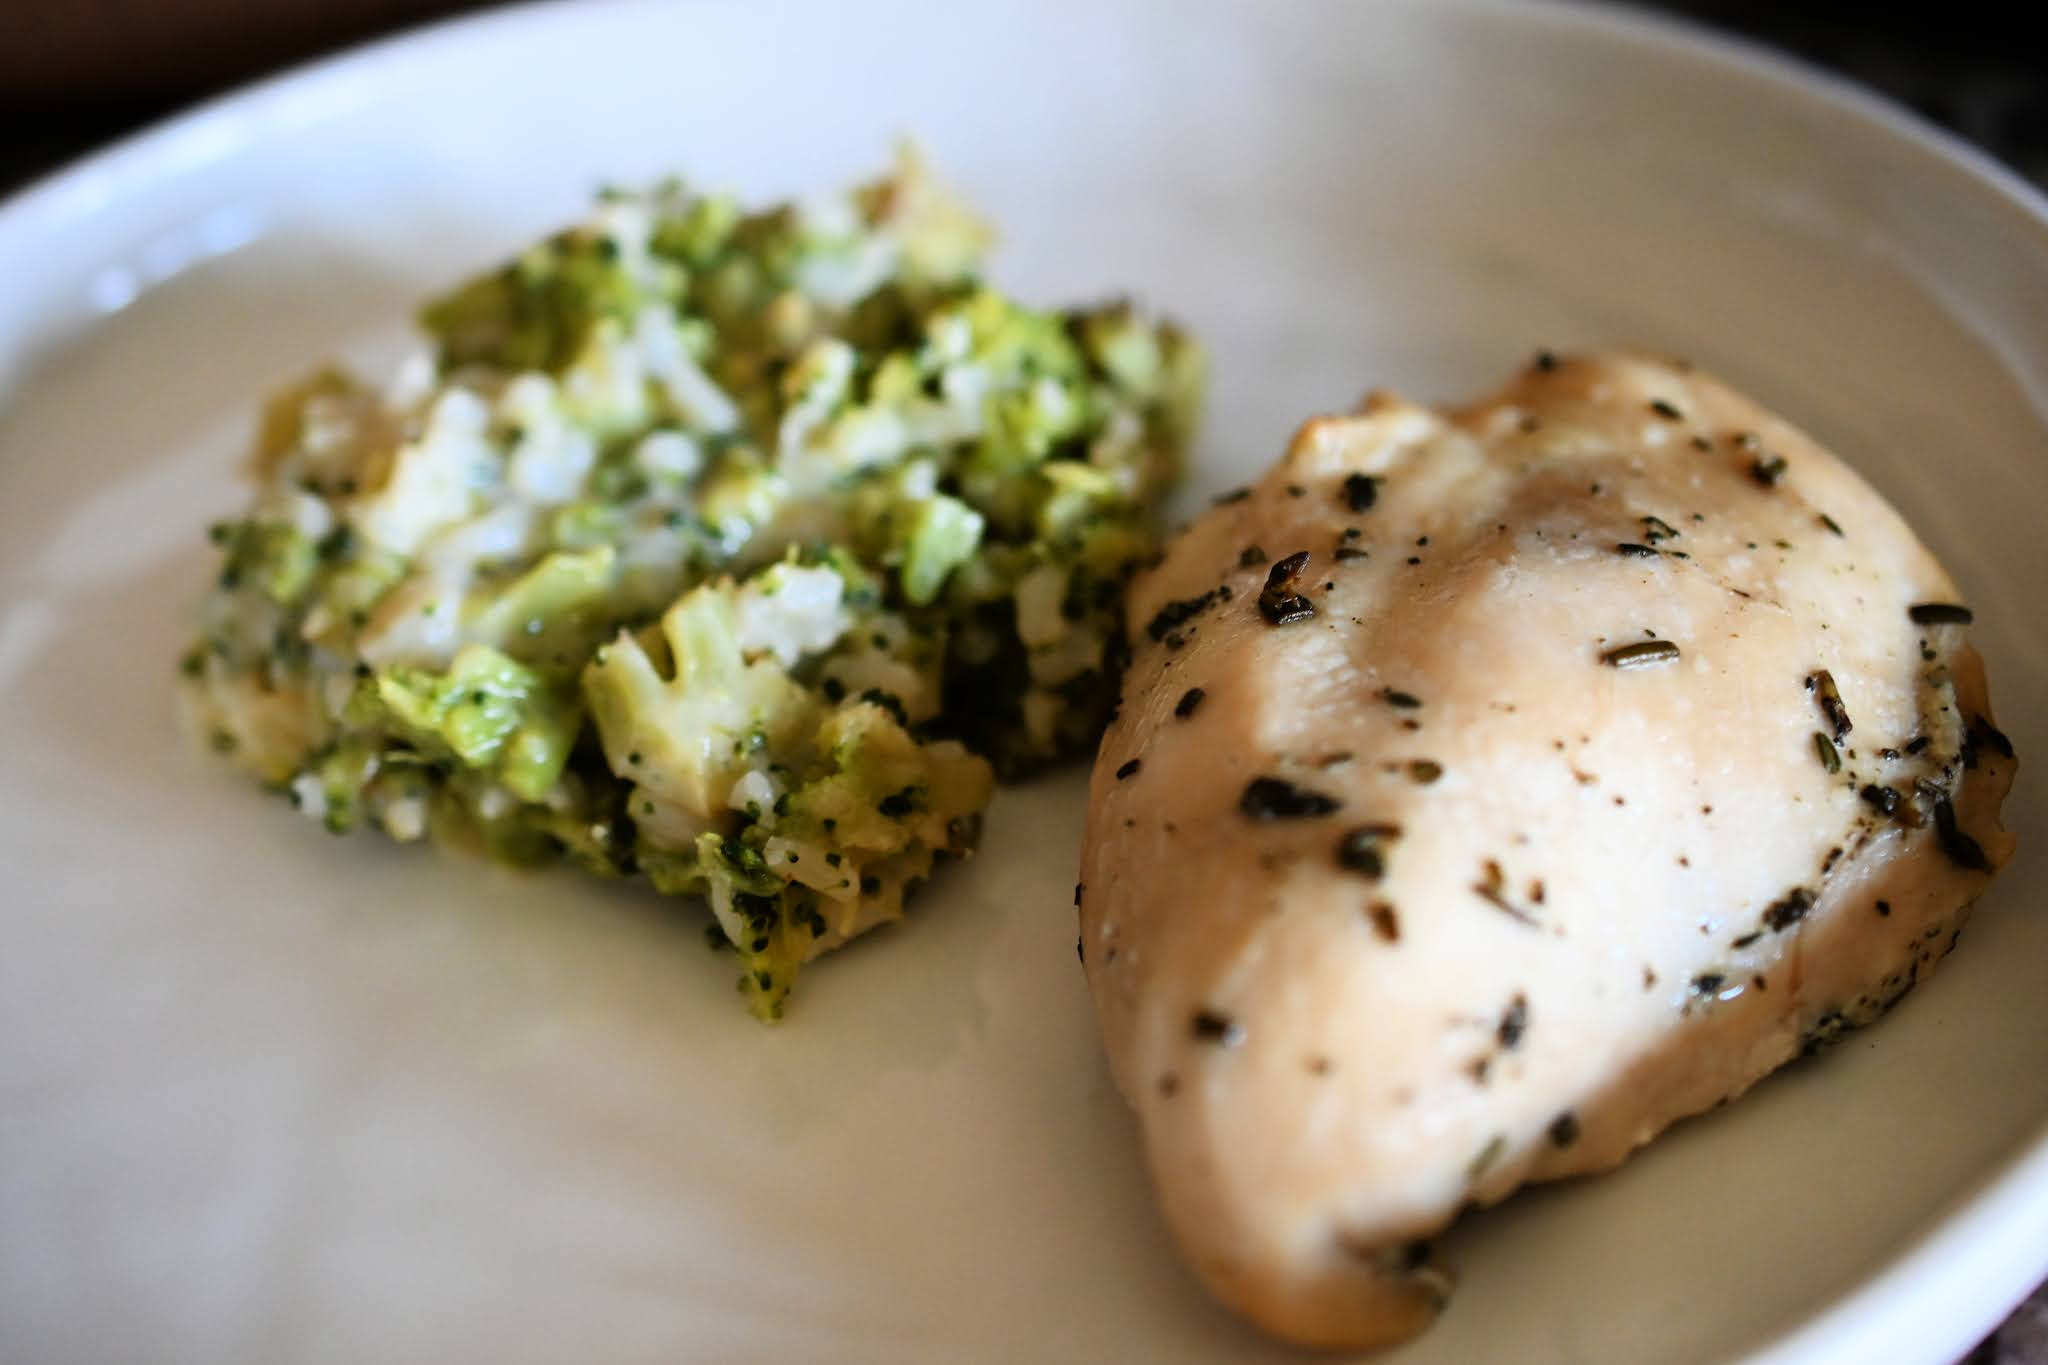 Herb Roasted Chicken and Cheesy Broccoli Pilaf